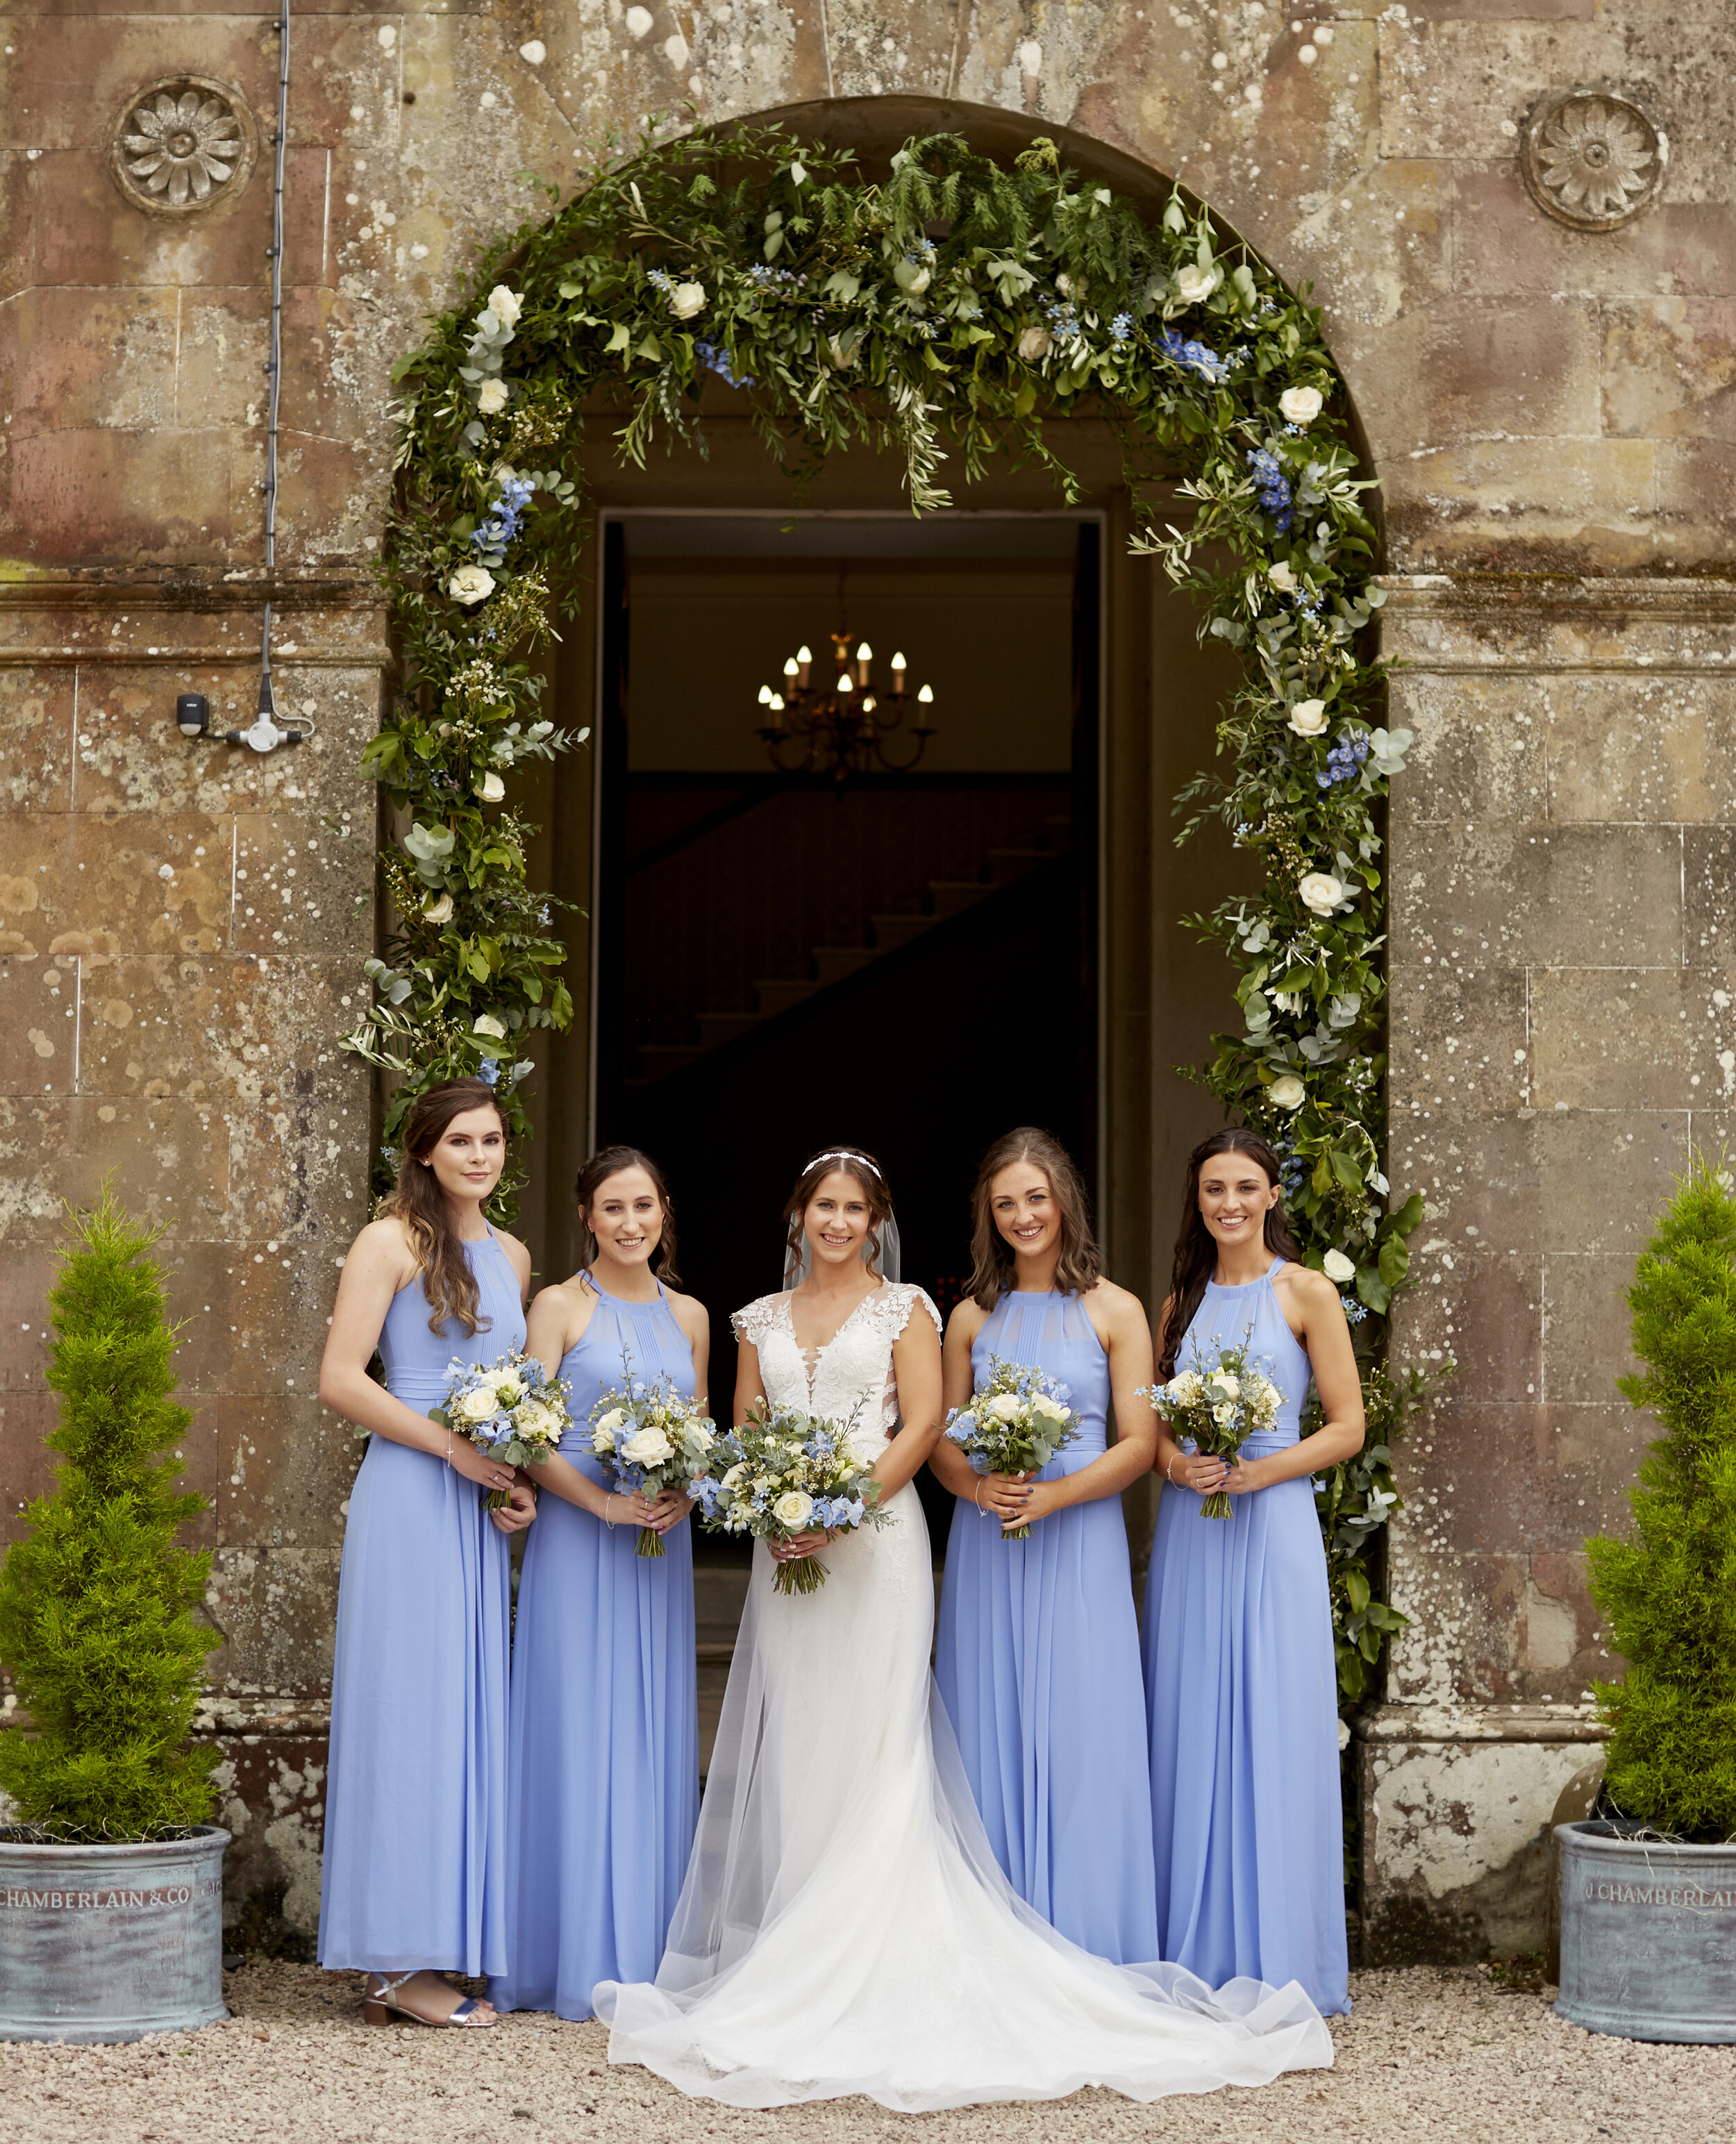 Faye & her bridesmaids | Story of Love Wedding Photography